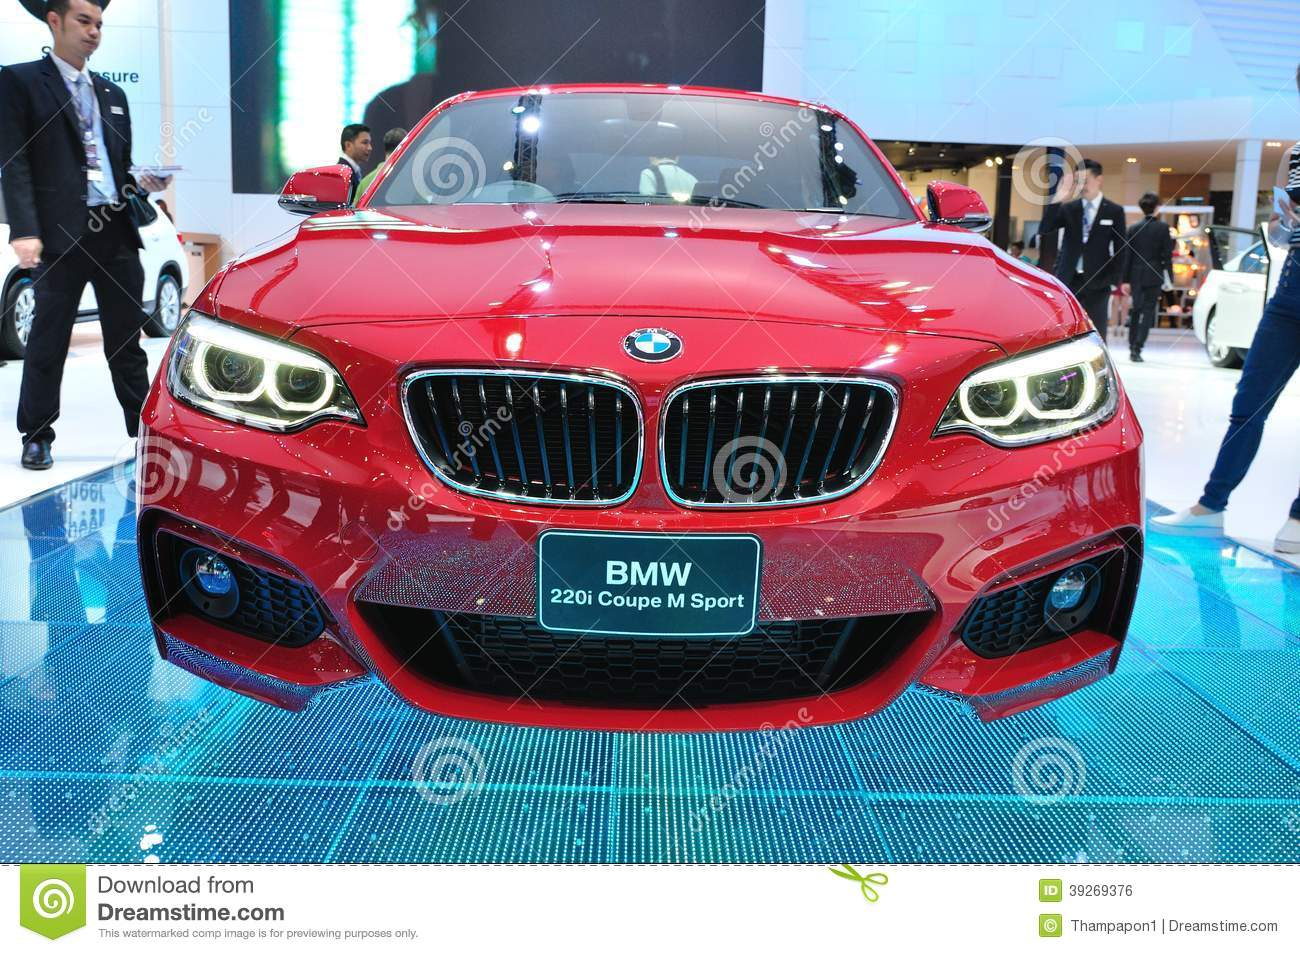 New Bmw 220i Coupe M Sport On Display Editorial Photo